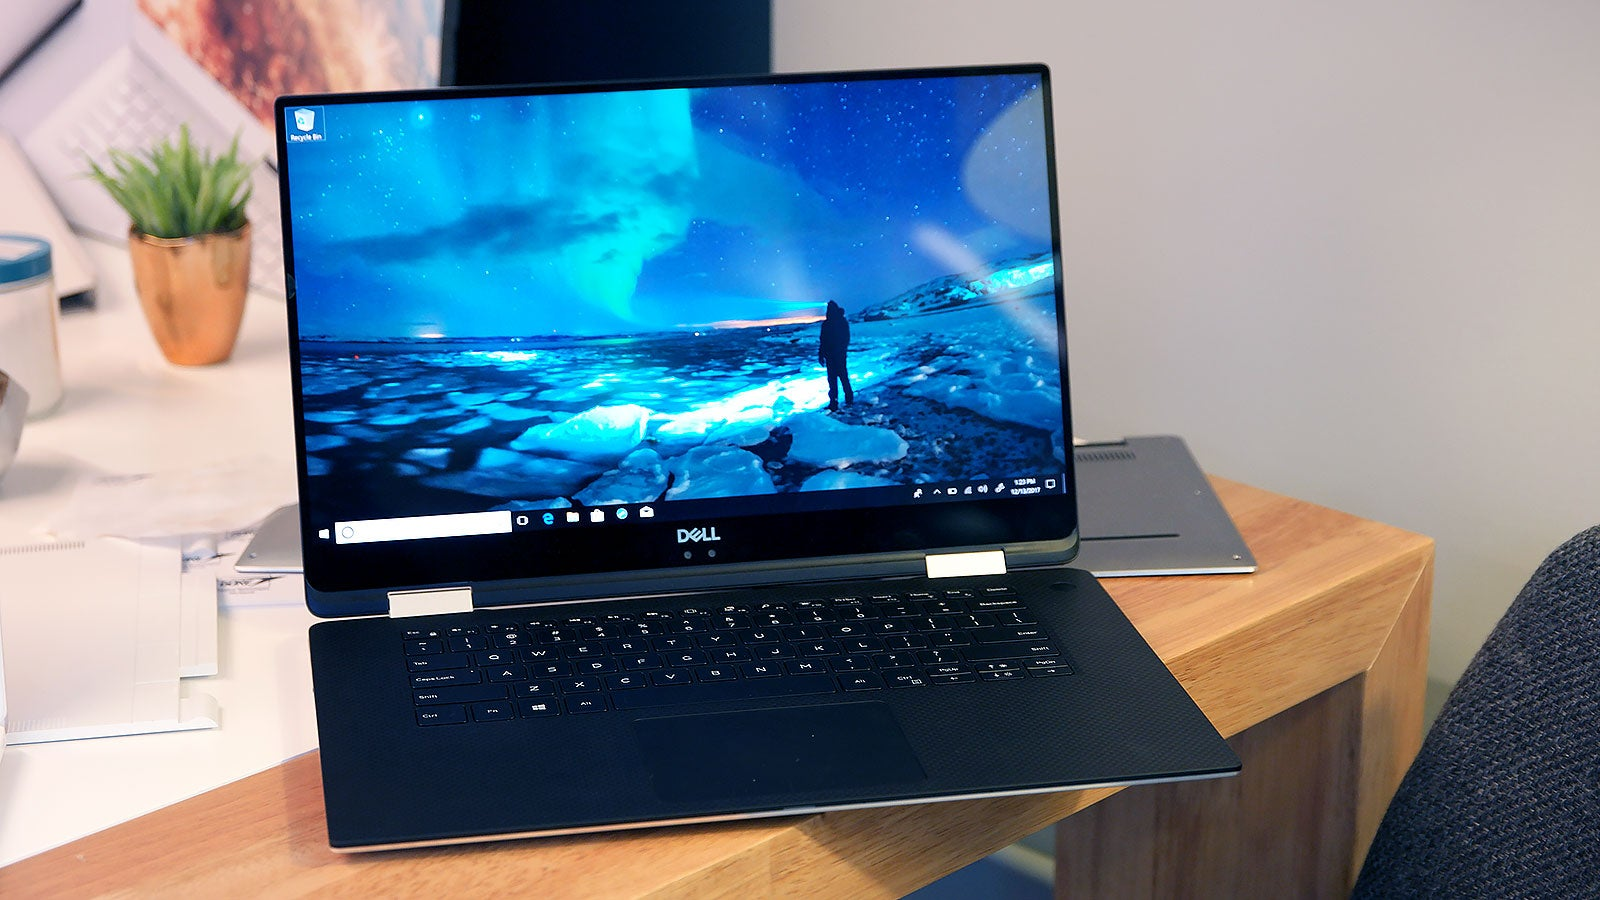 ces 2018 dells xps 15 2in1 wants to be the anti